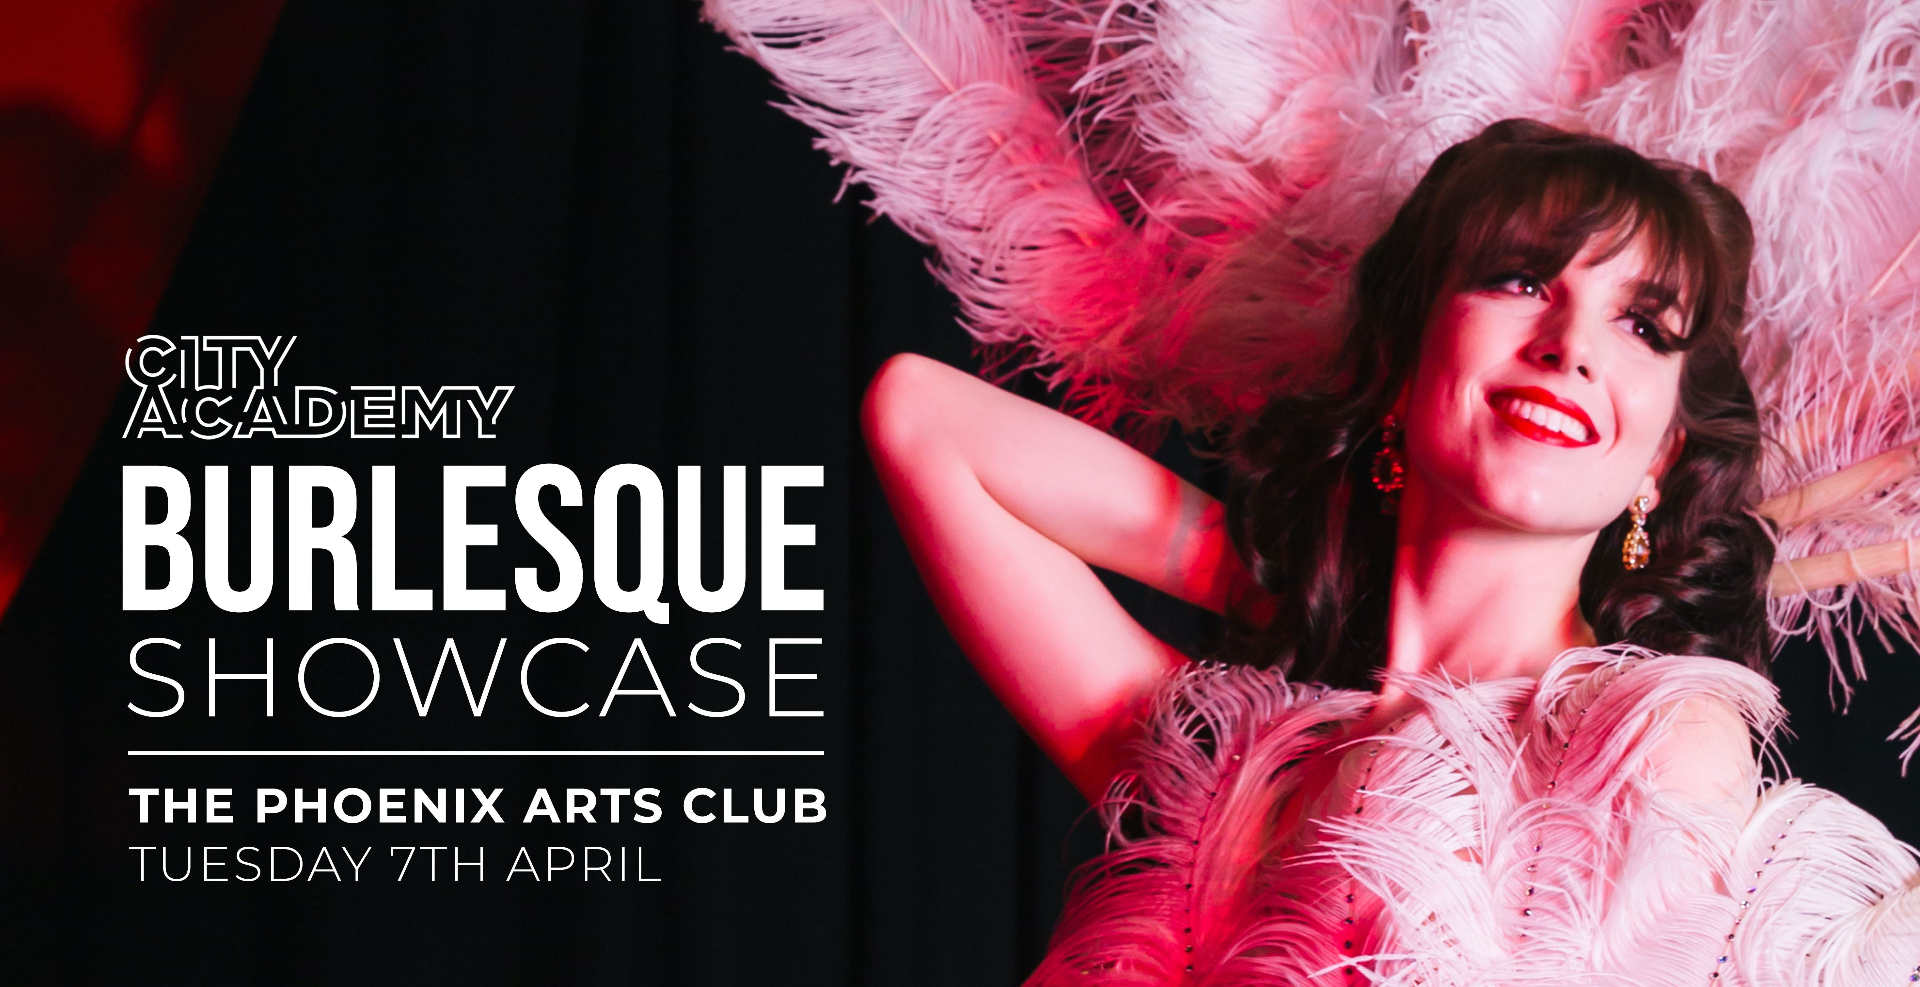 City Academy Burlesque Showcase